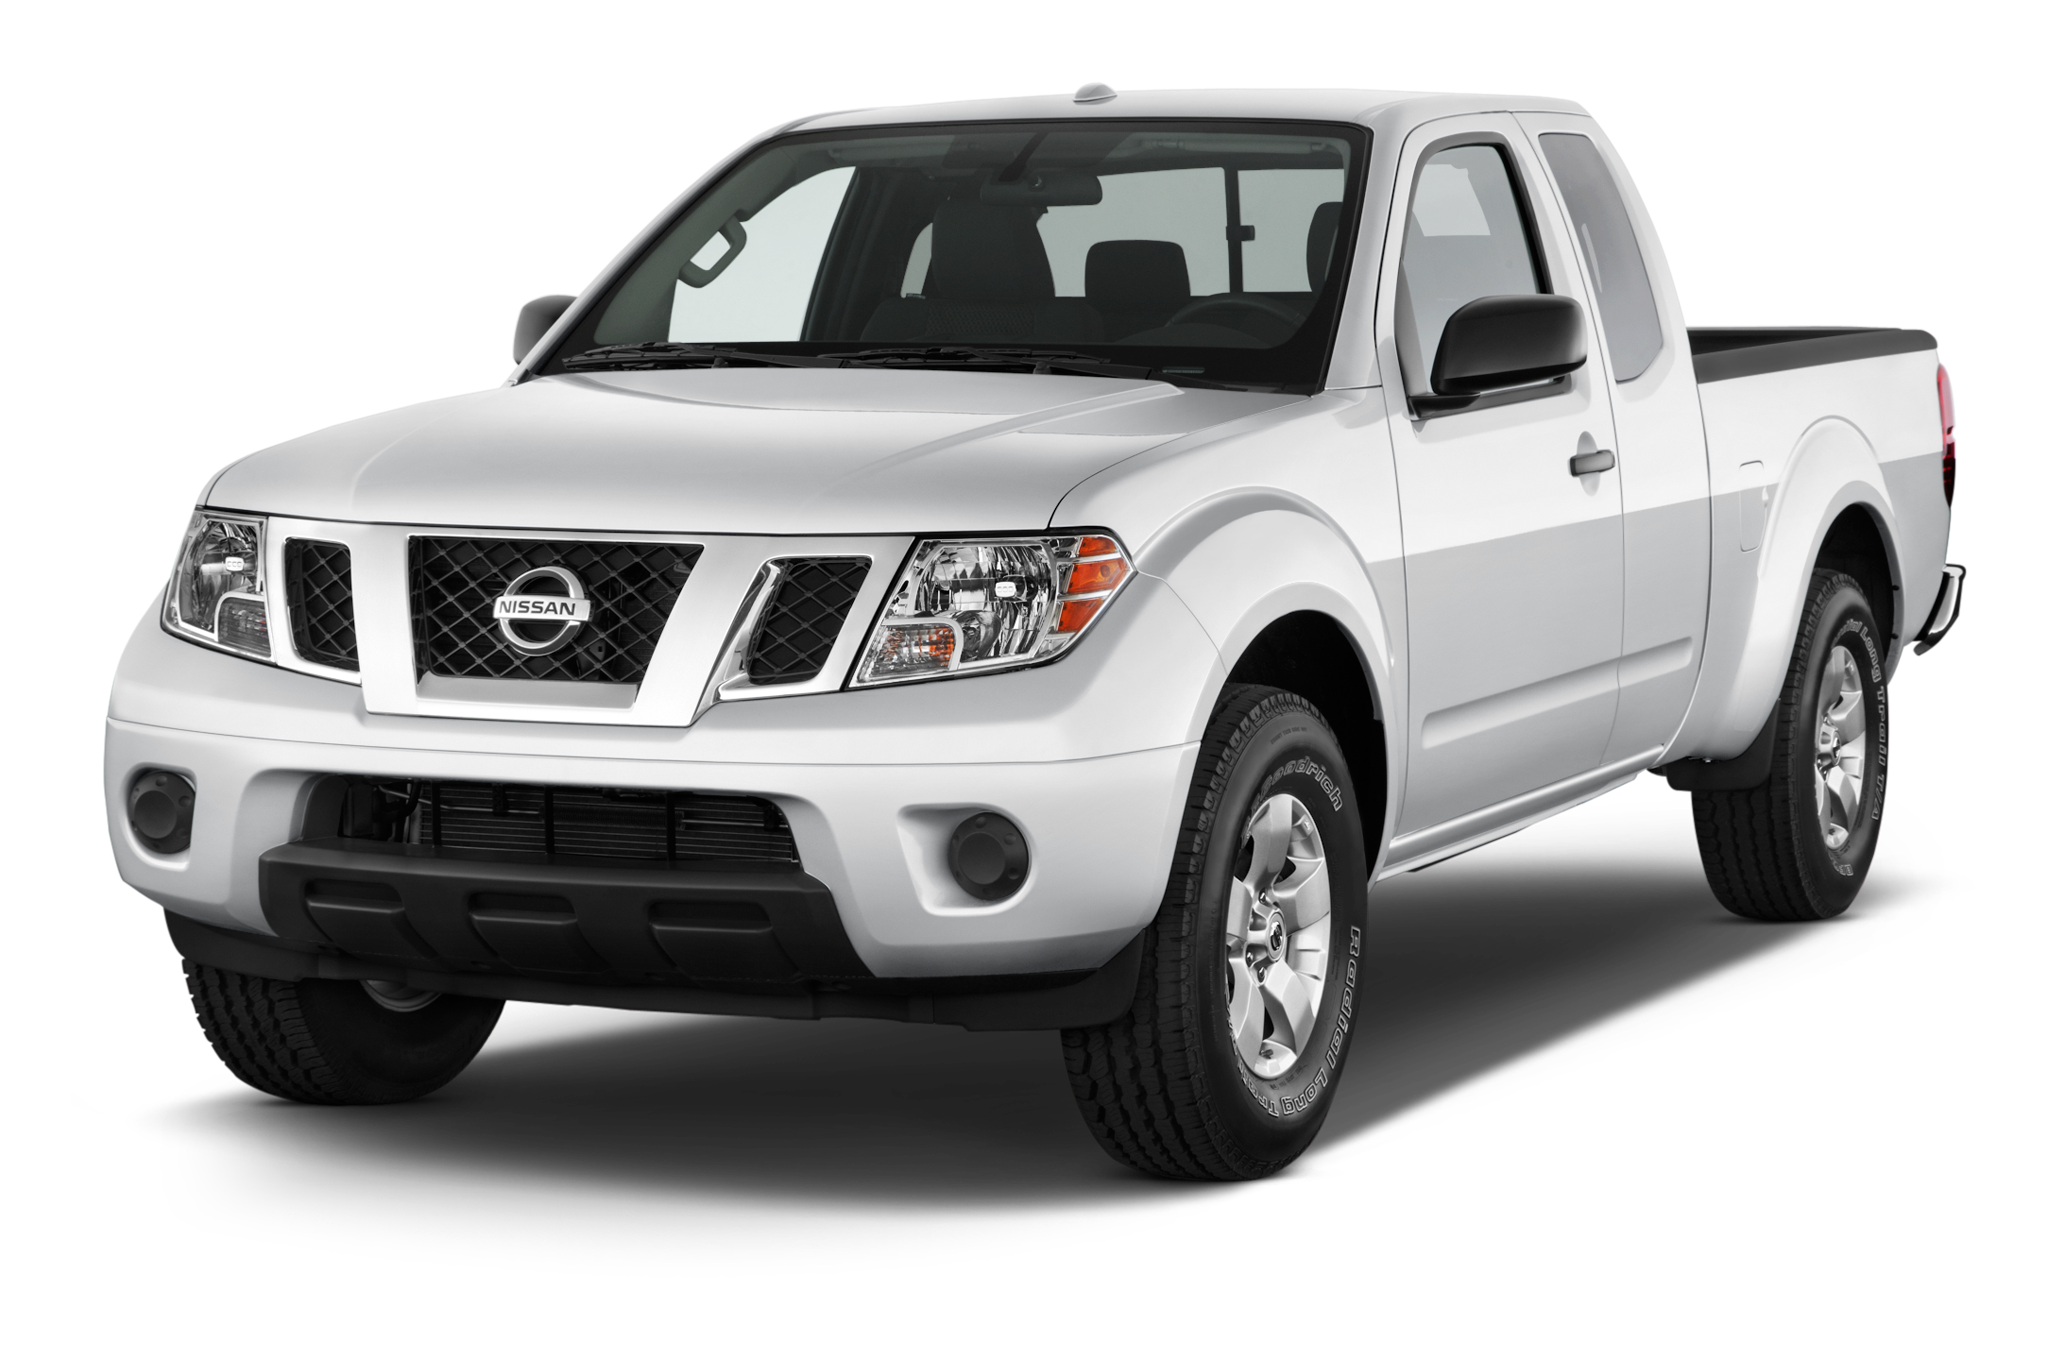 Nissan Navara (Frontier) IV (D23) 2014 - now Pickup #4